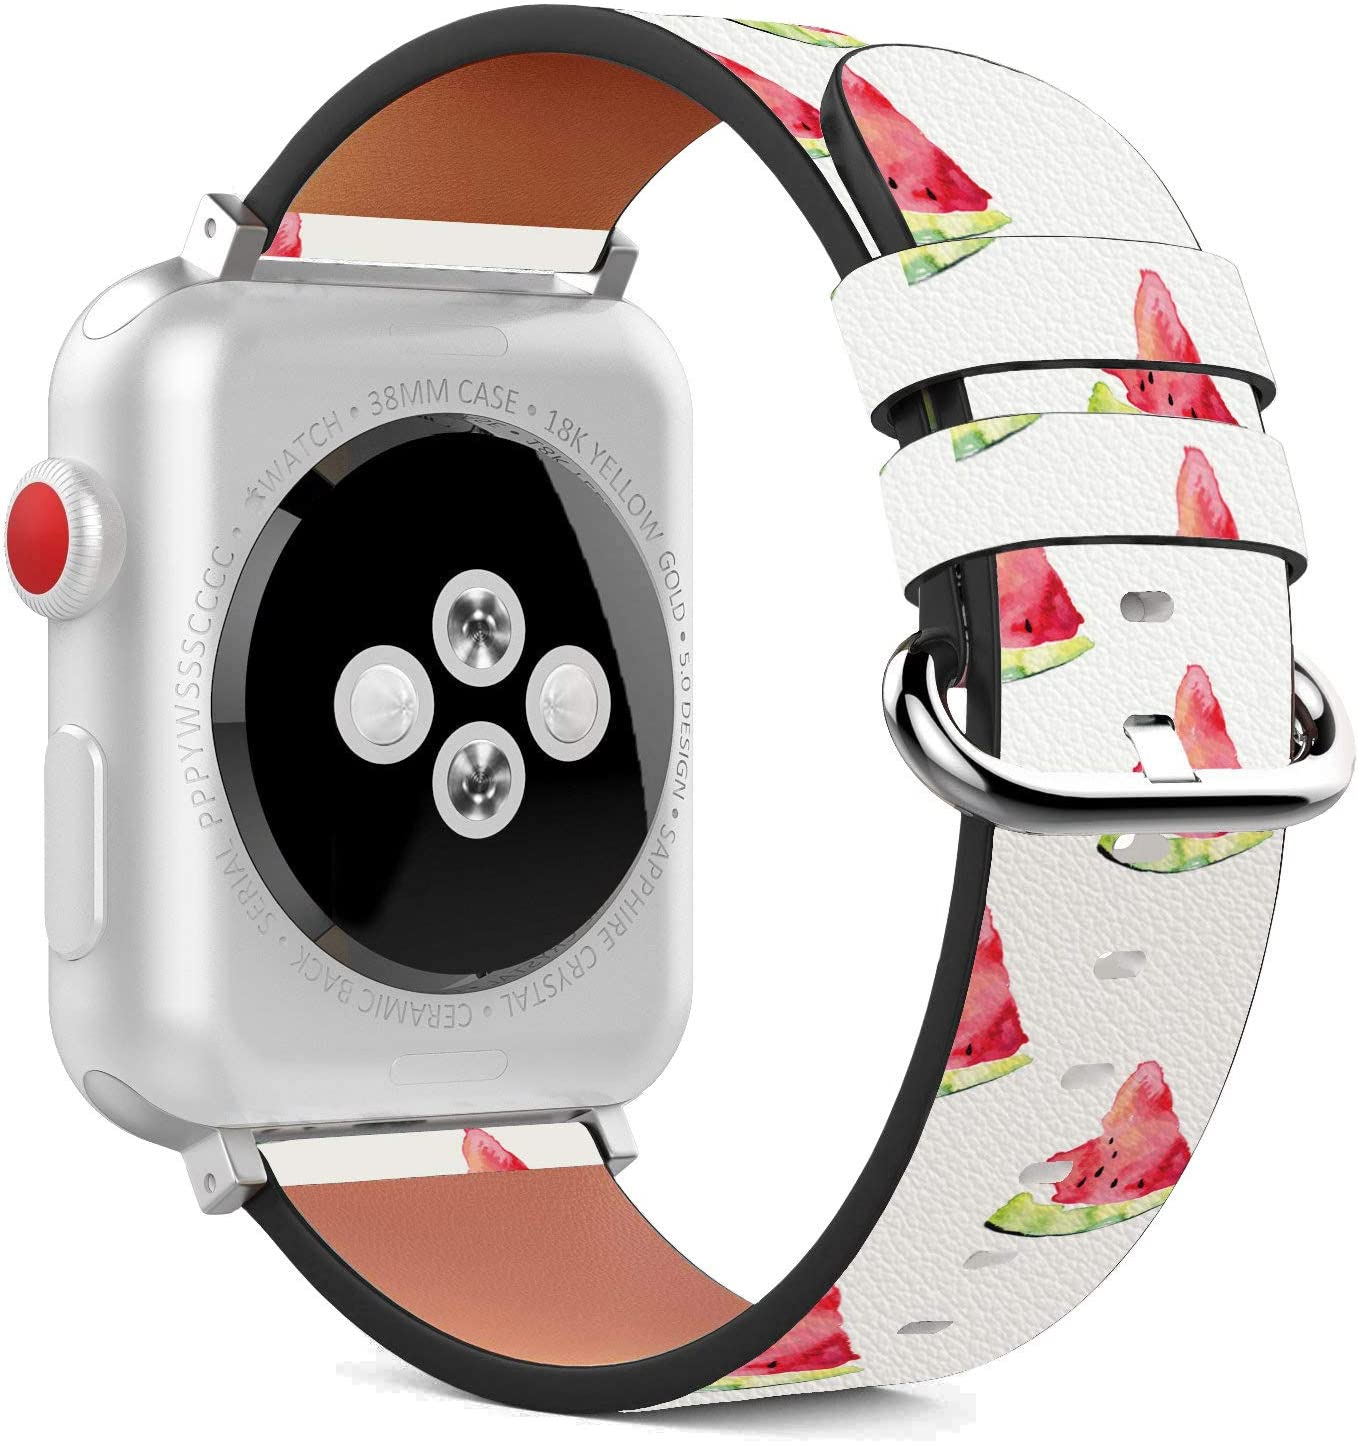 Compatible with Apple Watch - 38mm / 40mm (Serie 5,4,3,2,1) Leather Wristband Bracelet with Stainless Steel Clasp and Adapters - Watermelon Slice Fresh